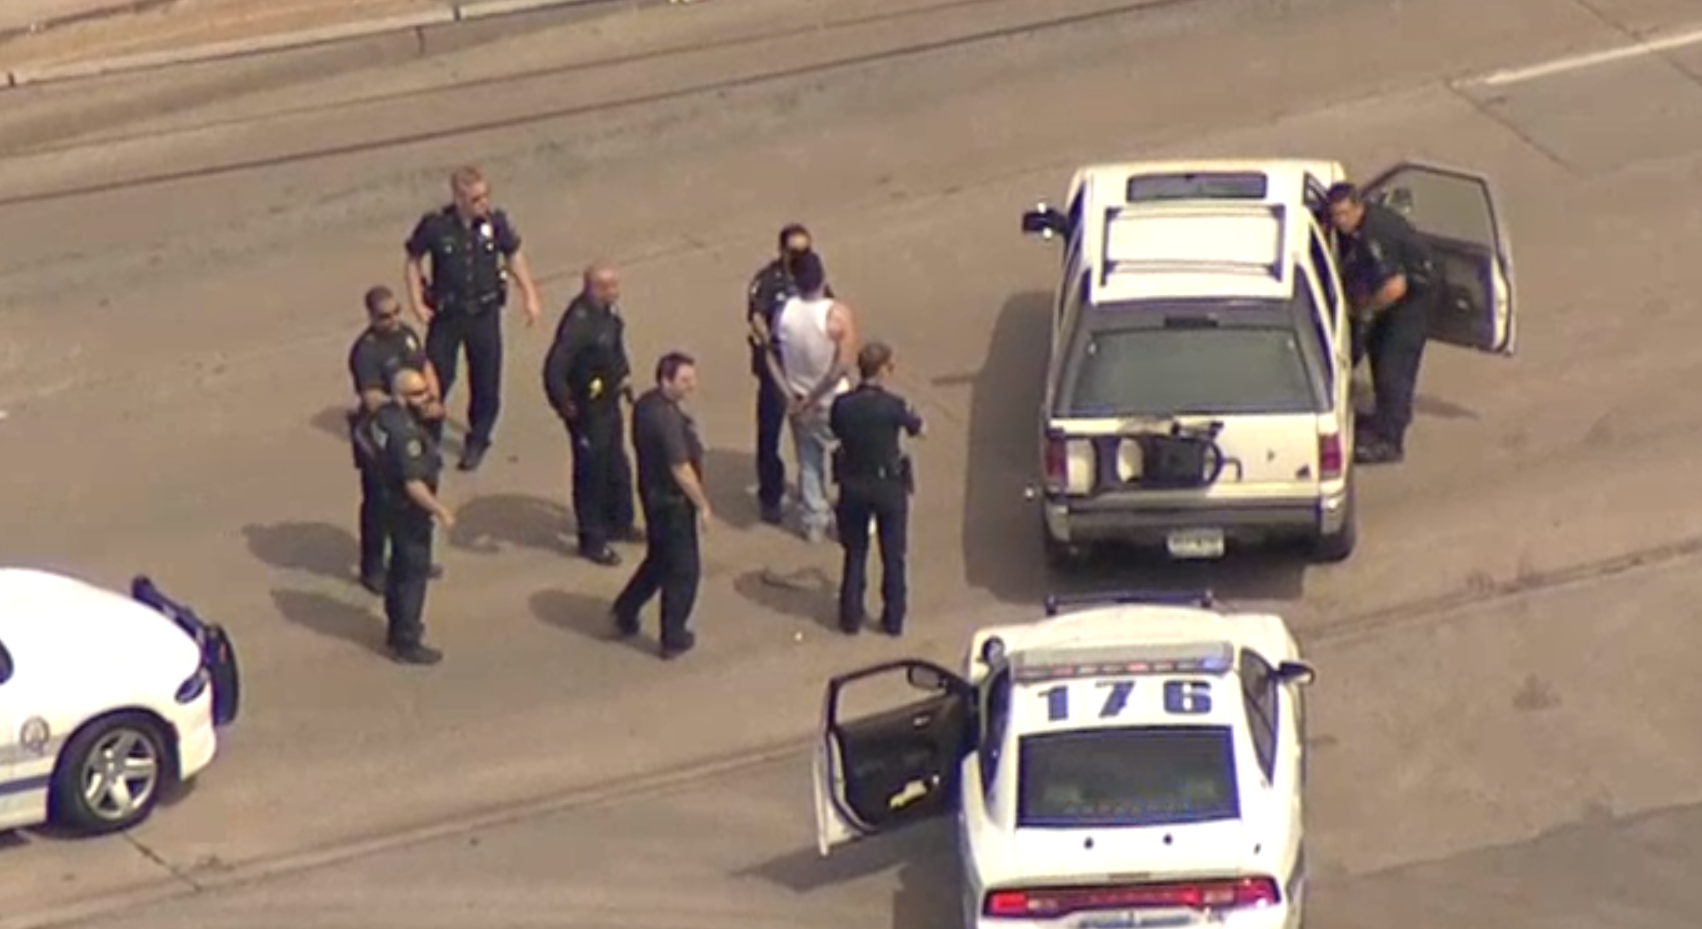 Theft suspect led police on chase from Mesquite to Dallas, authorities say